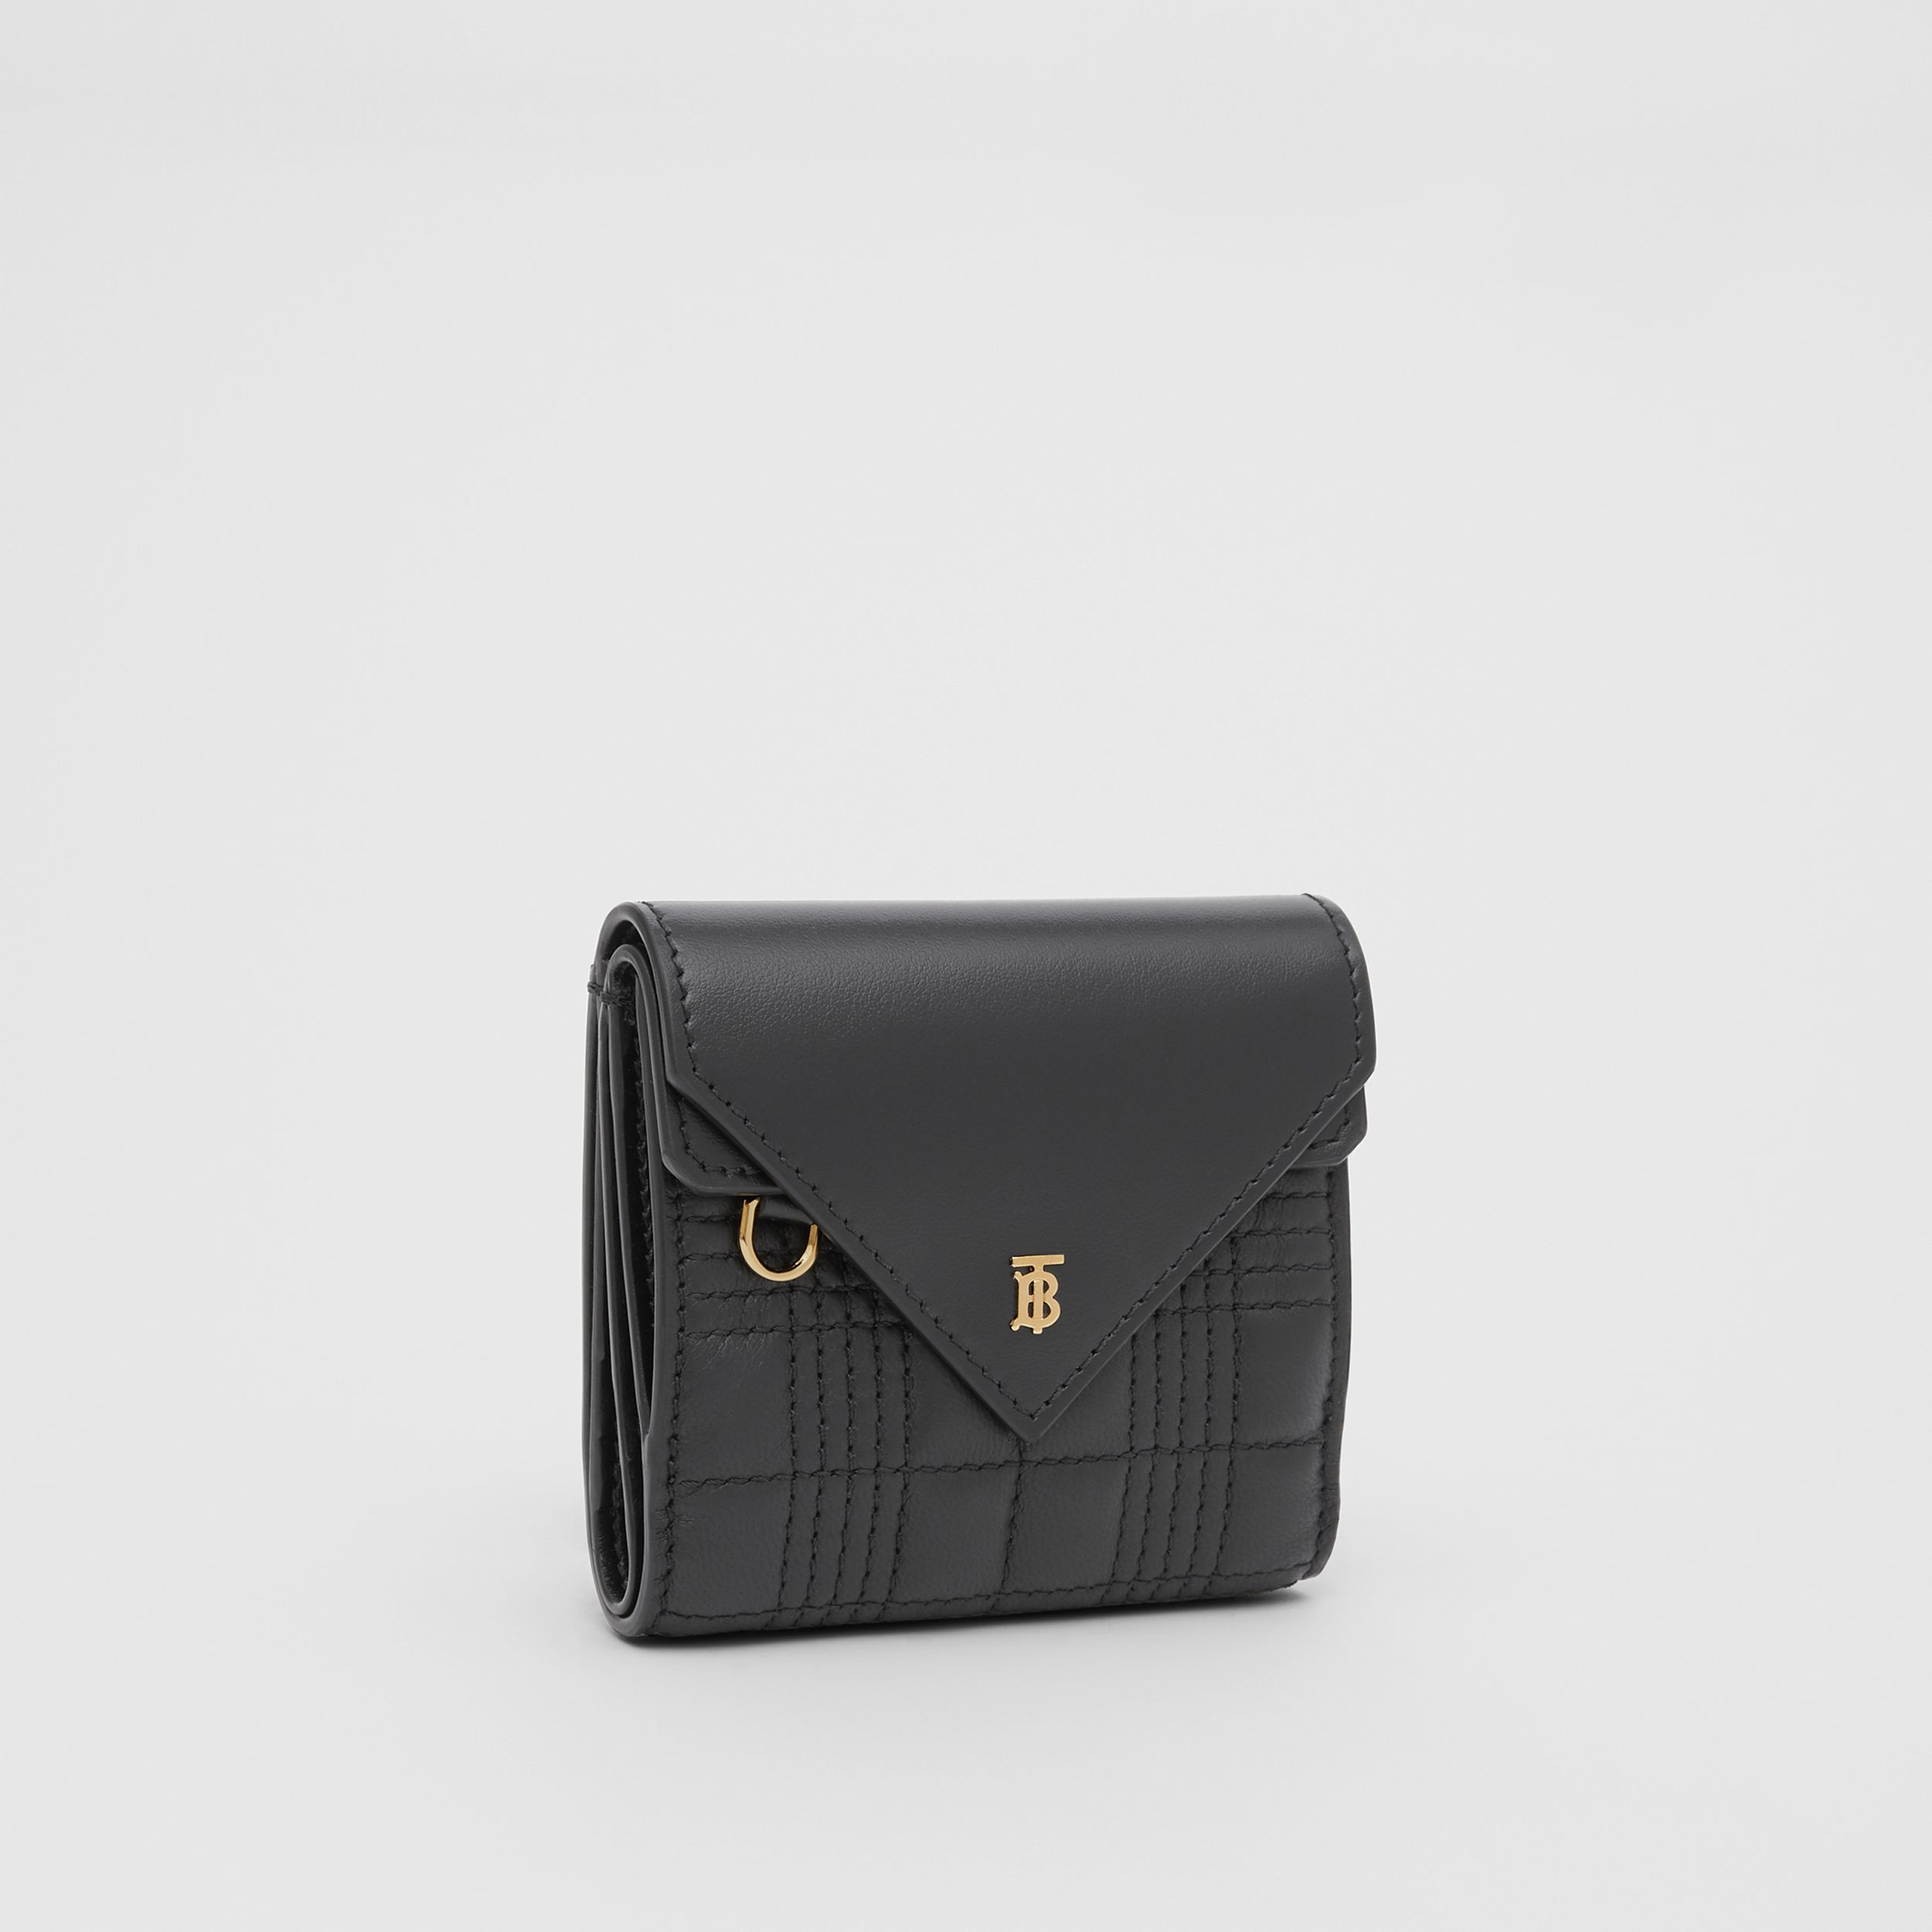 Quilted Lambskin Folding Wallet in Black - Women | Burberry - 4